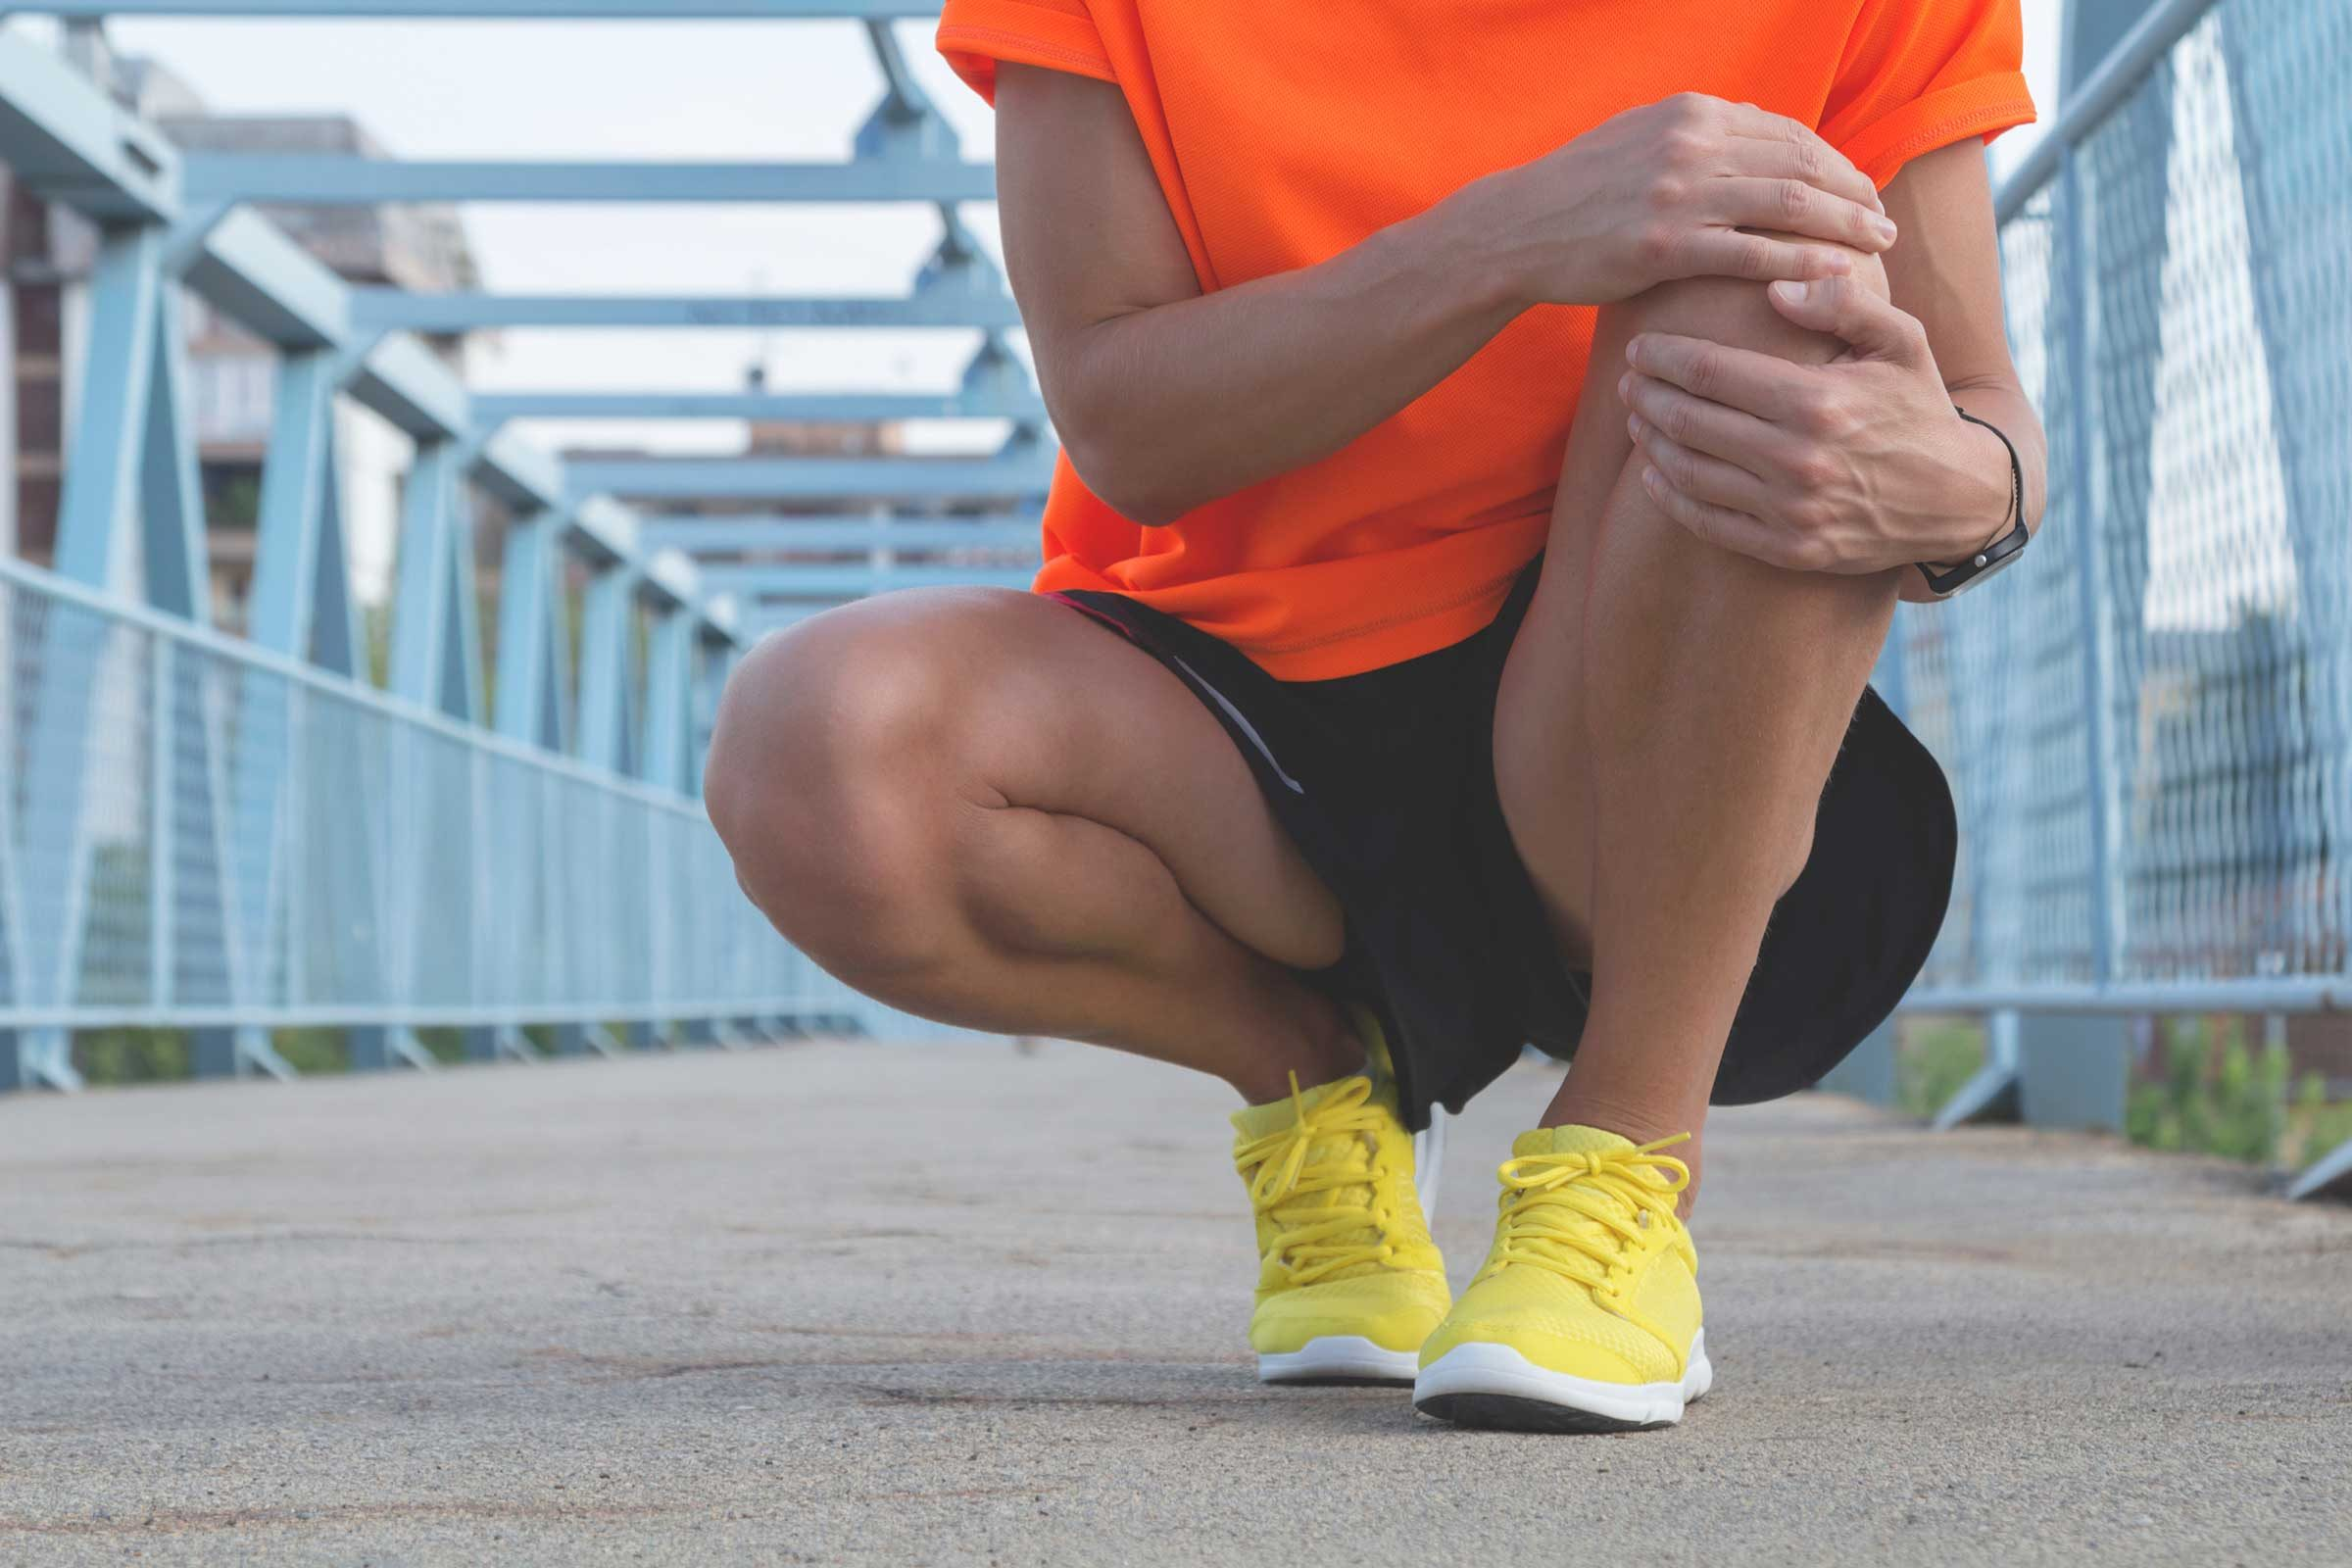 home remedies for sore muscles and pain | reader's digest